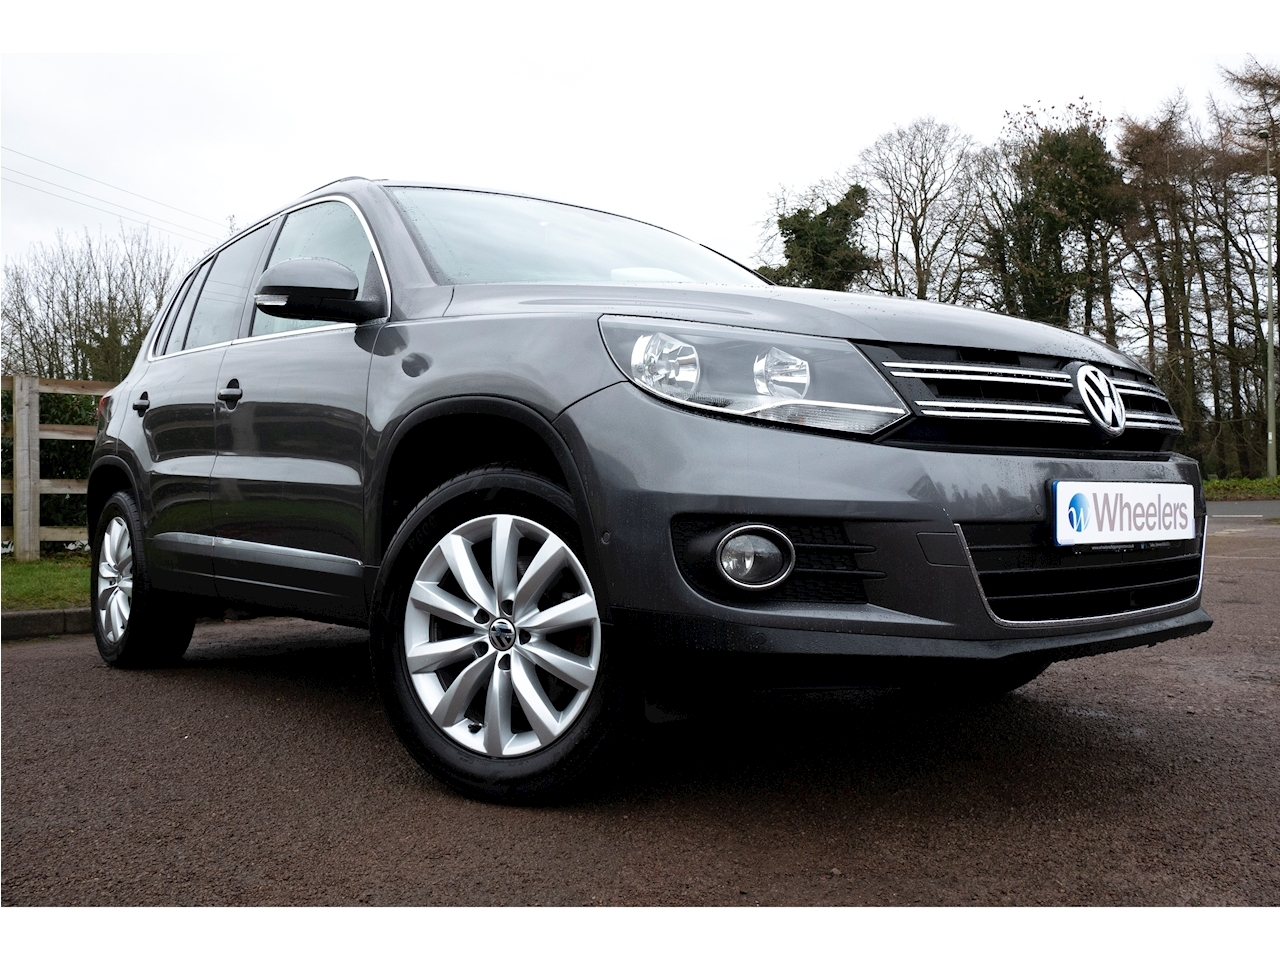 Volkswagen Tiguan Match Tdi Bluemotion Tech 4Motion Dsg Estate 2.0 Semi Auto Diesel